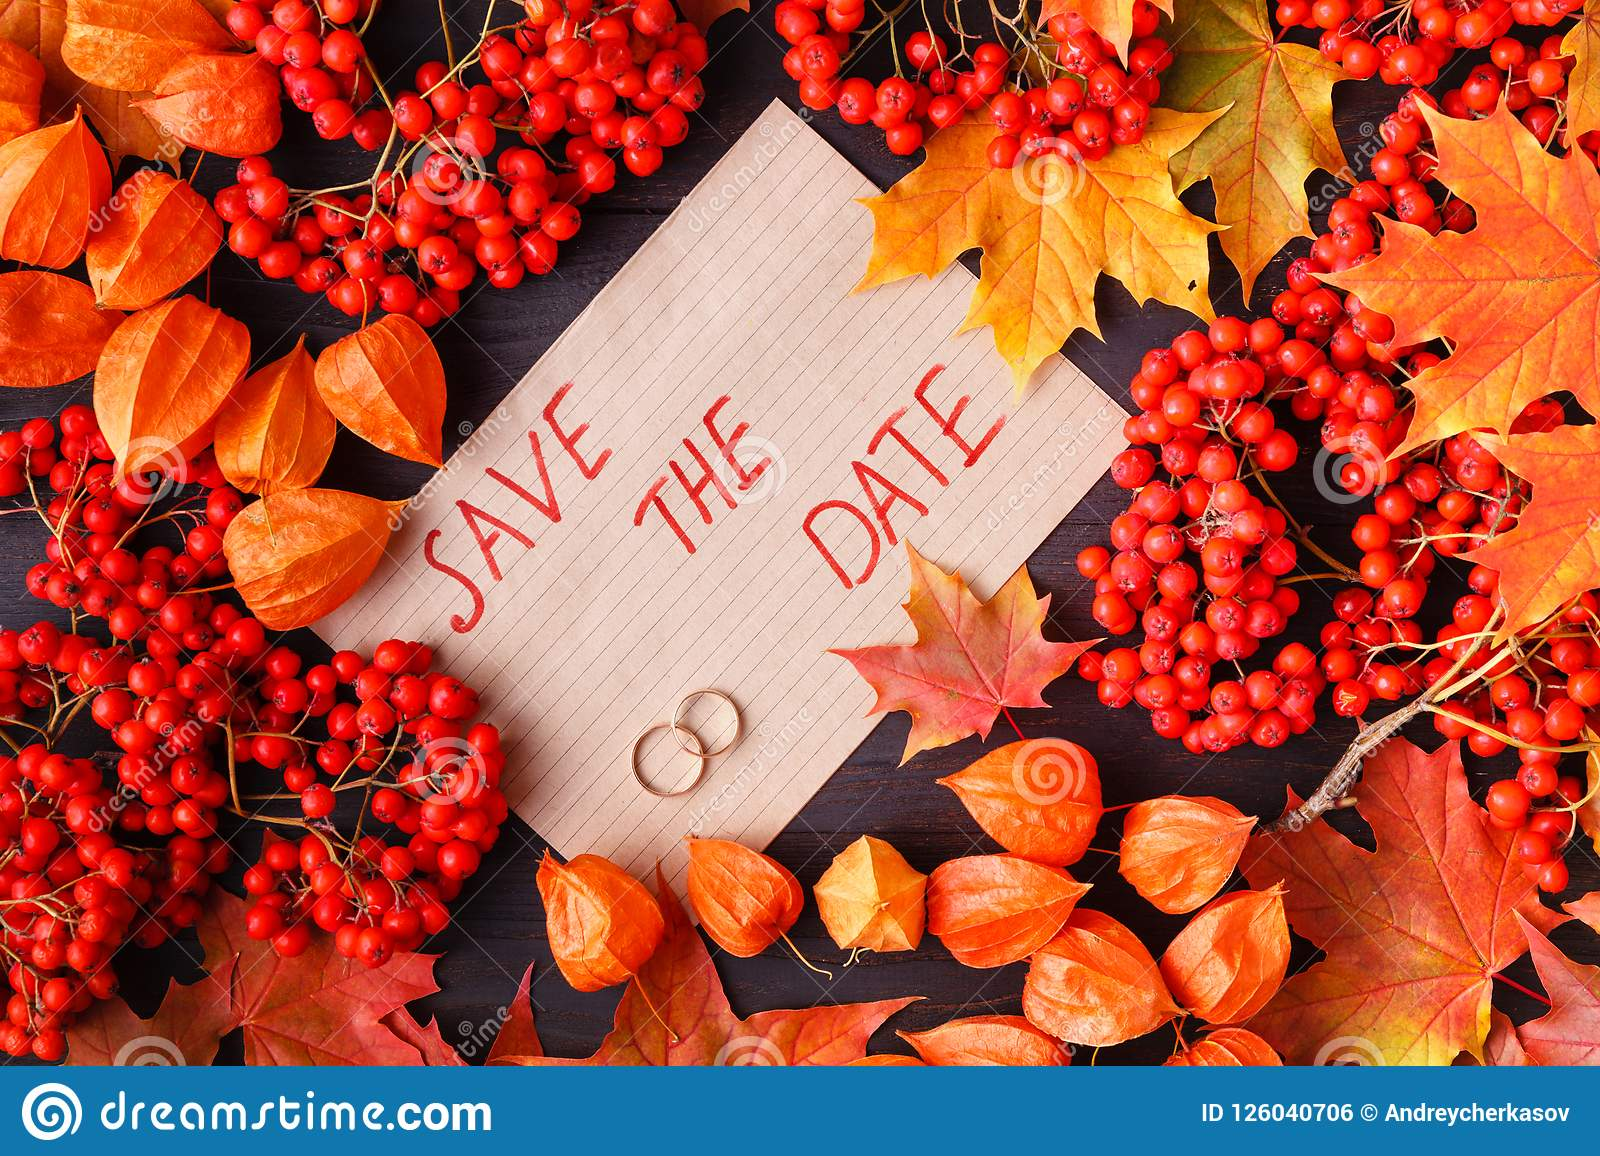 bright autumn leaves for wedding invitation or save the date